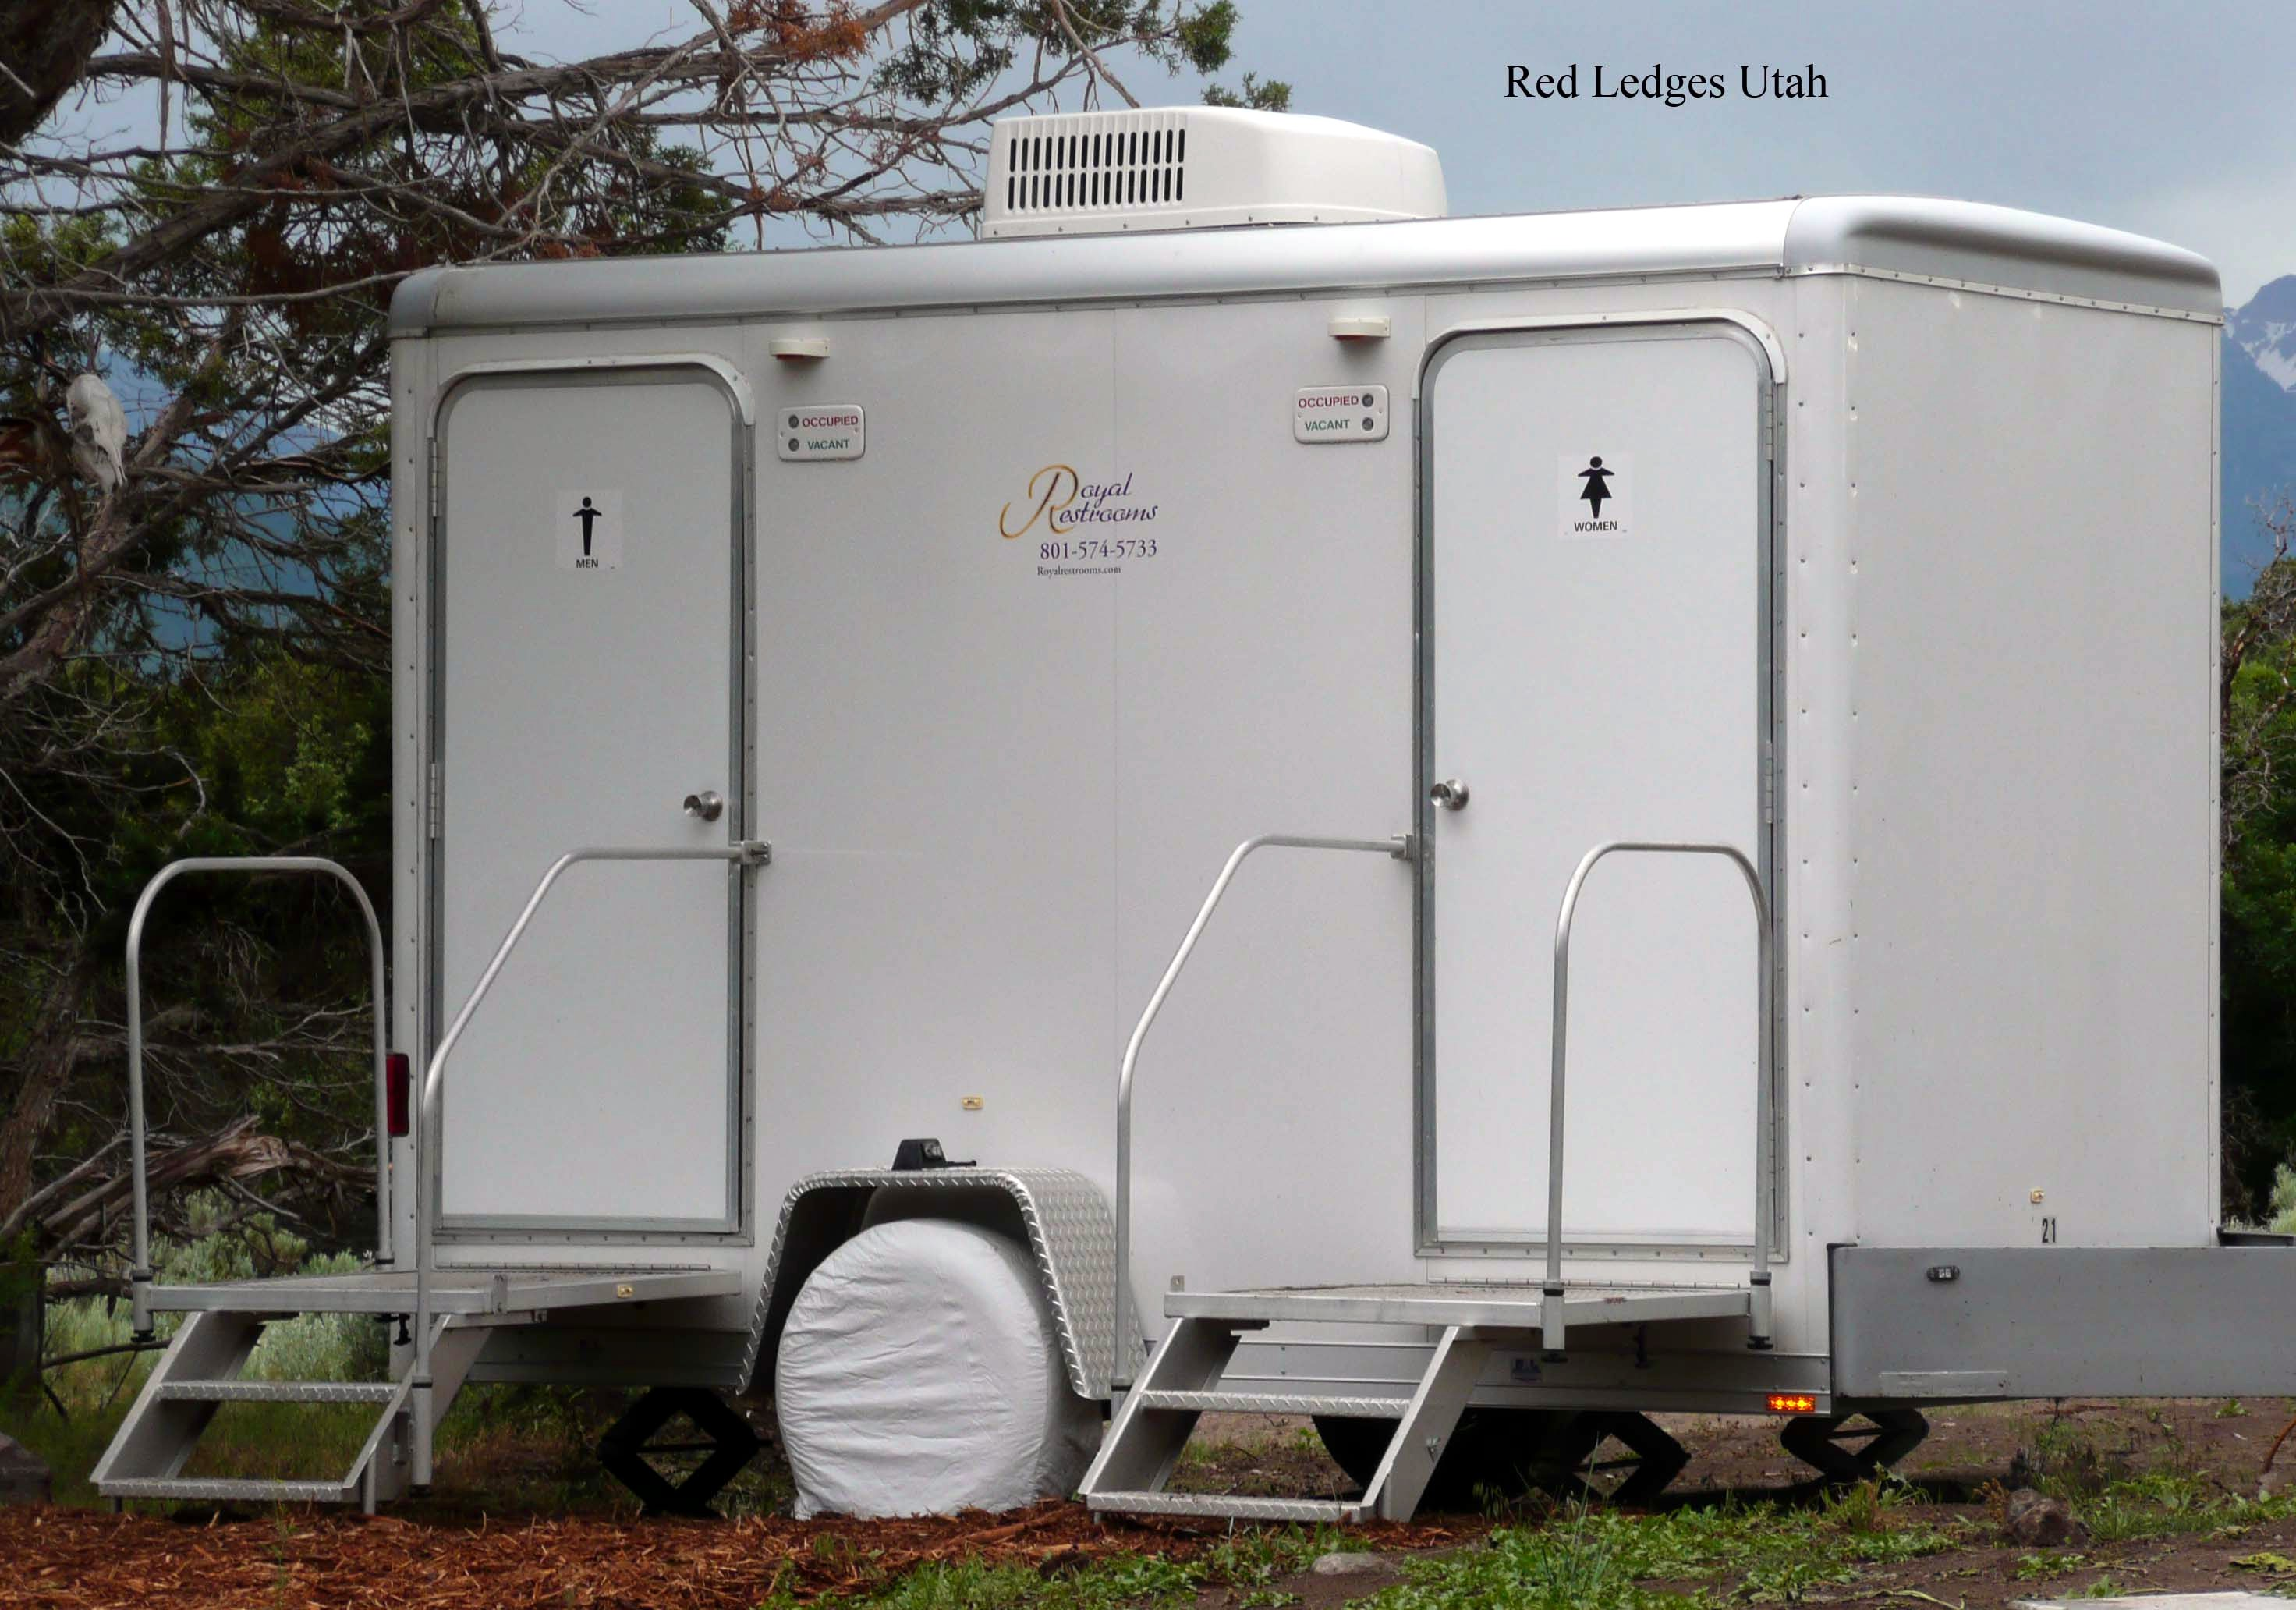 utah-portable-restrooms-at-red-ledges-10th-hole